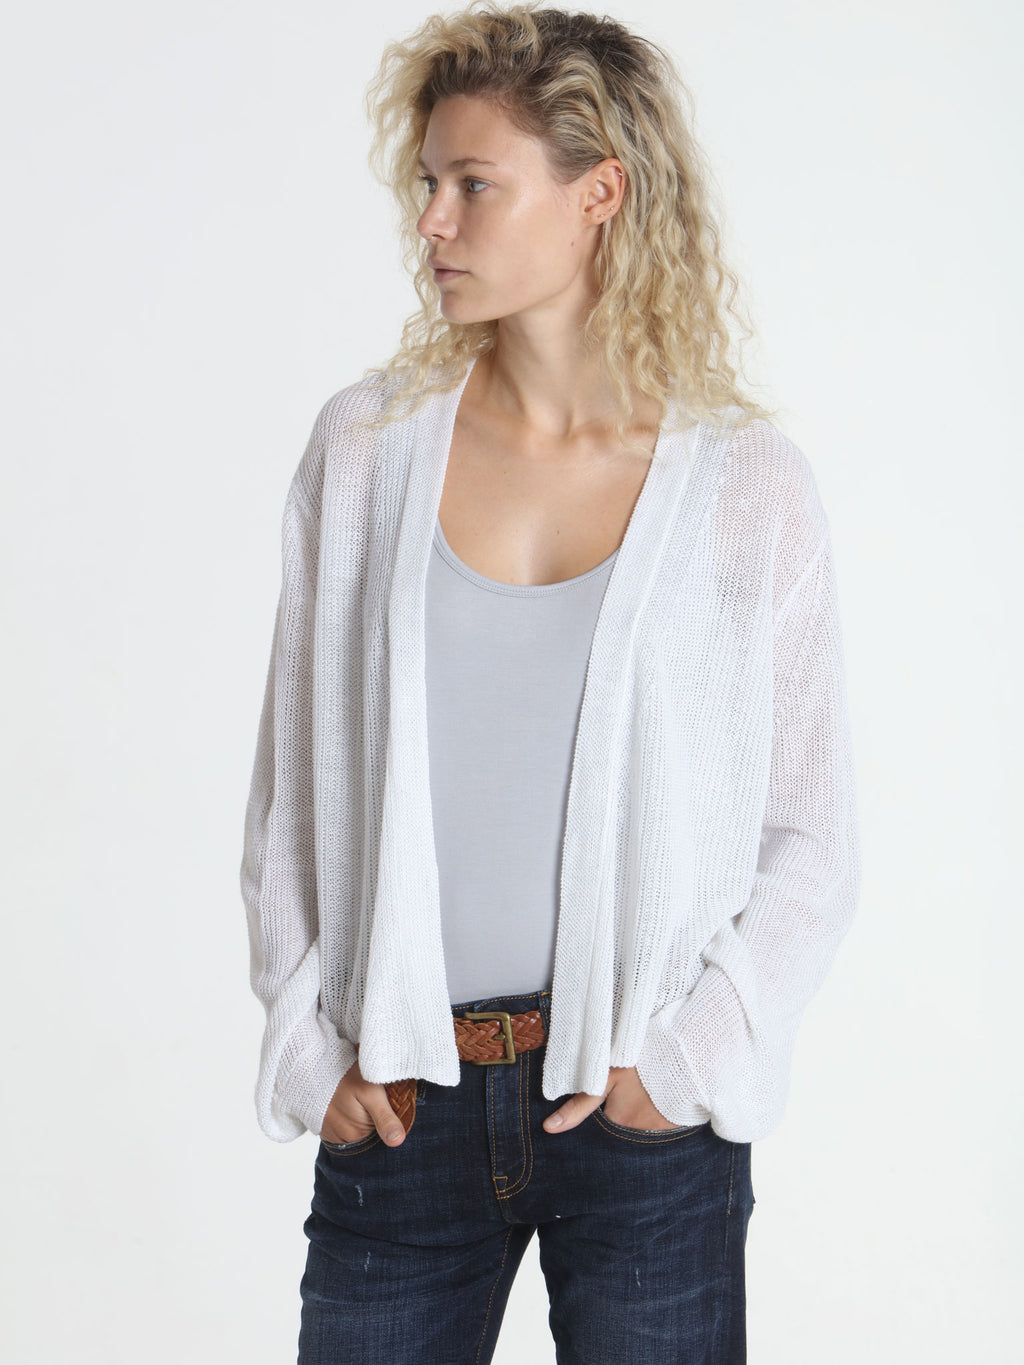 Ribbed Relax Cardigan - White